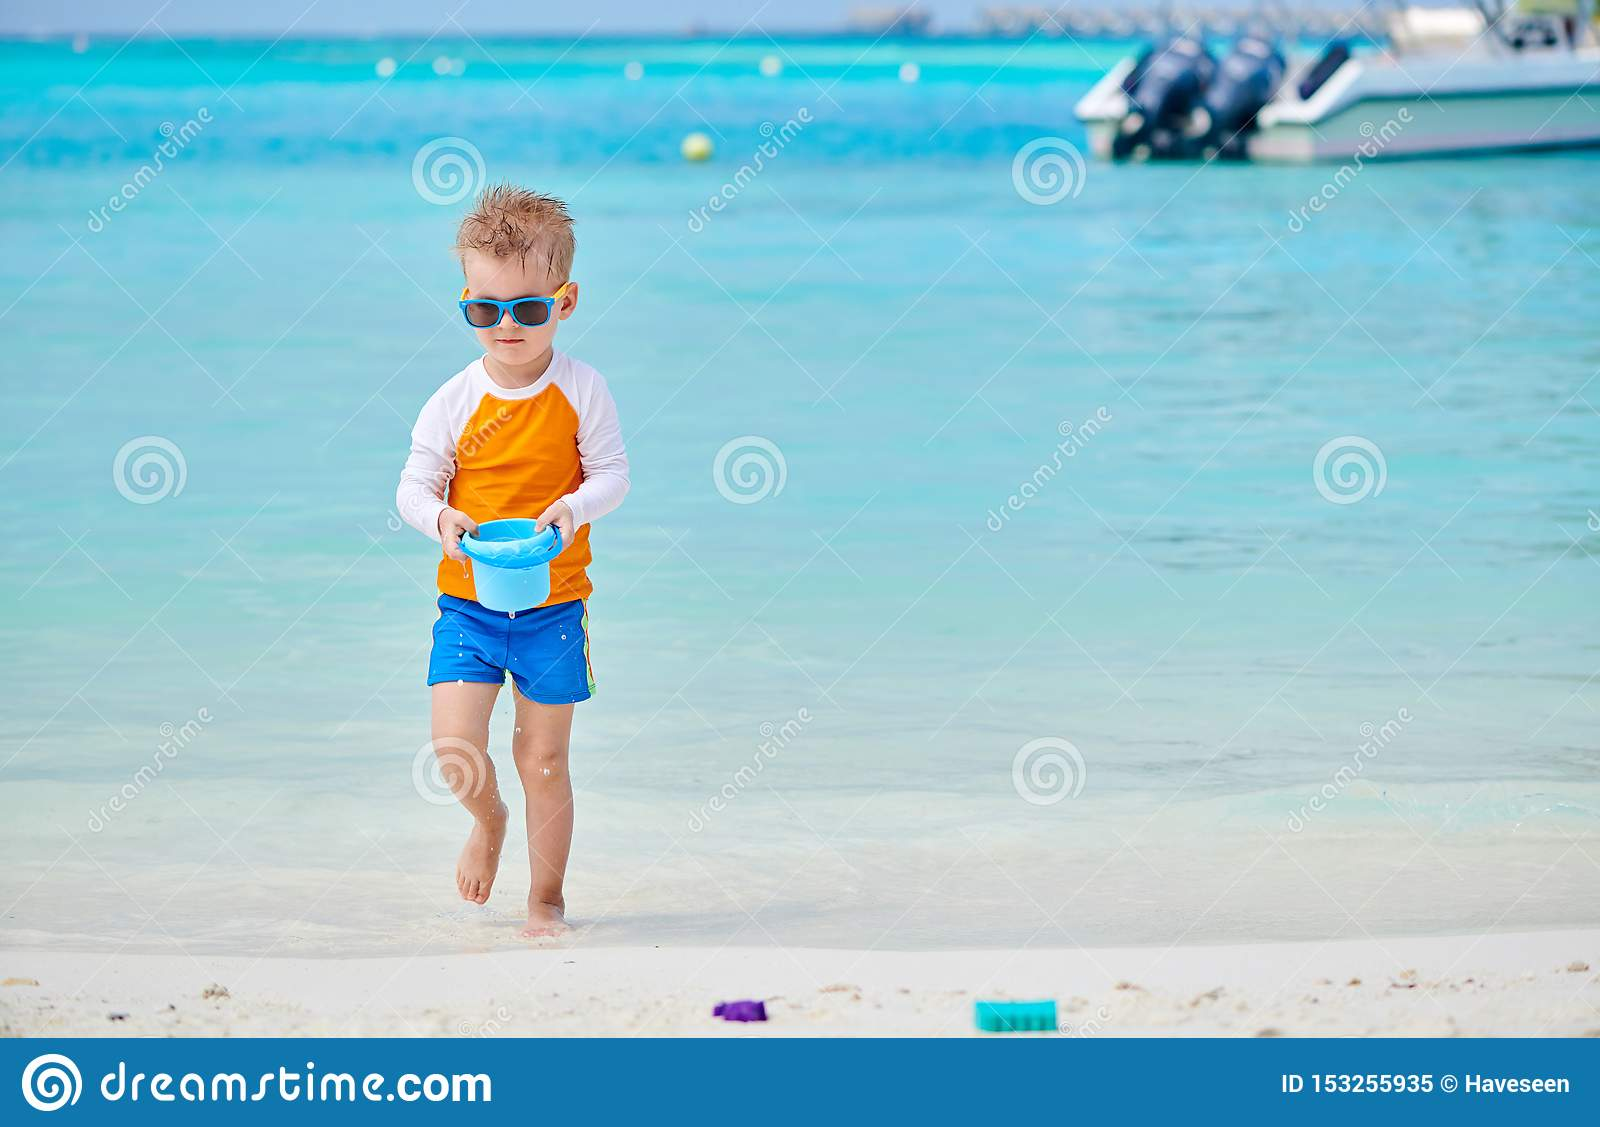 Three year old toddler playing on beach